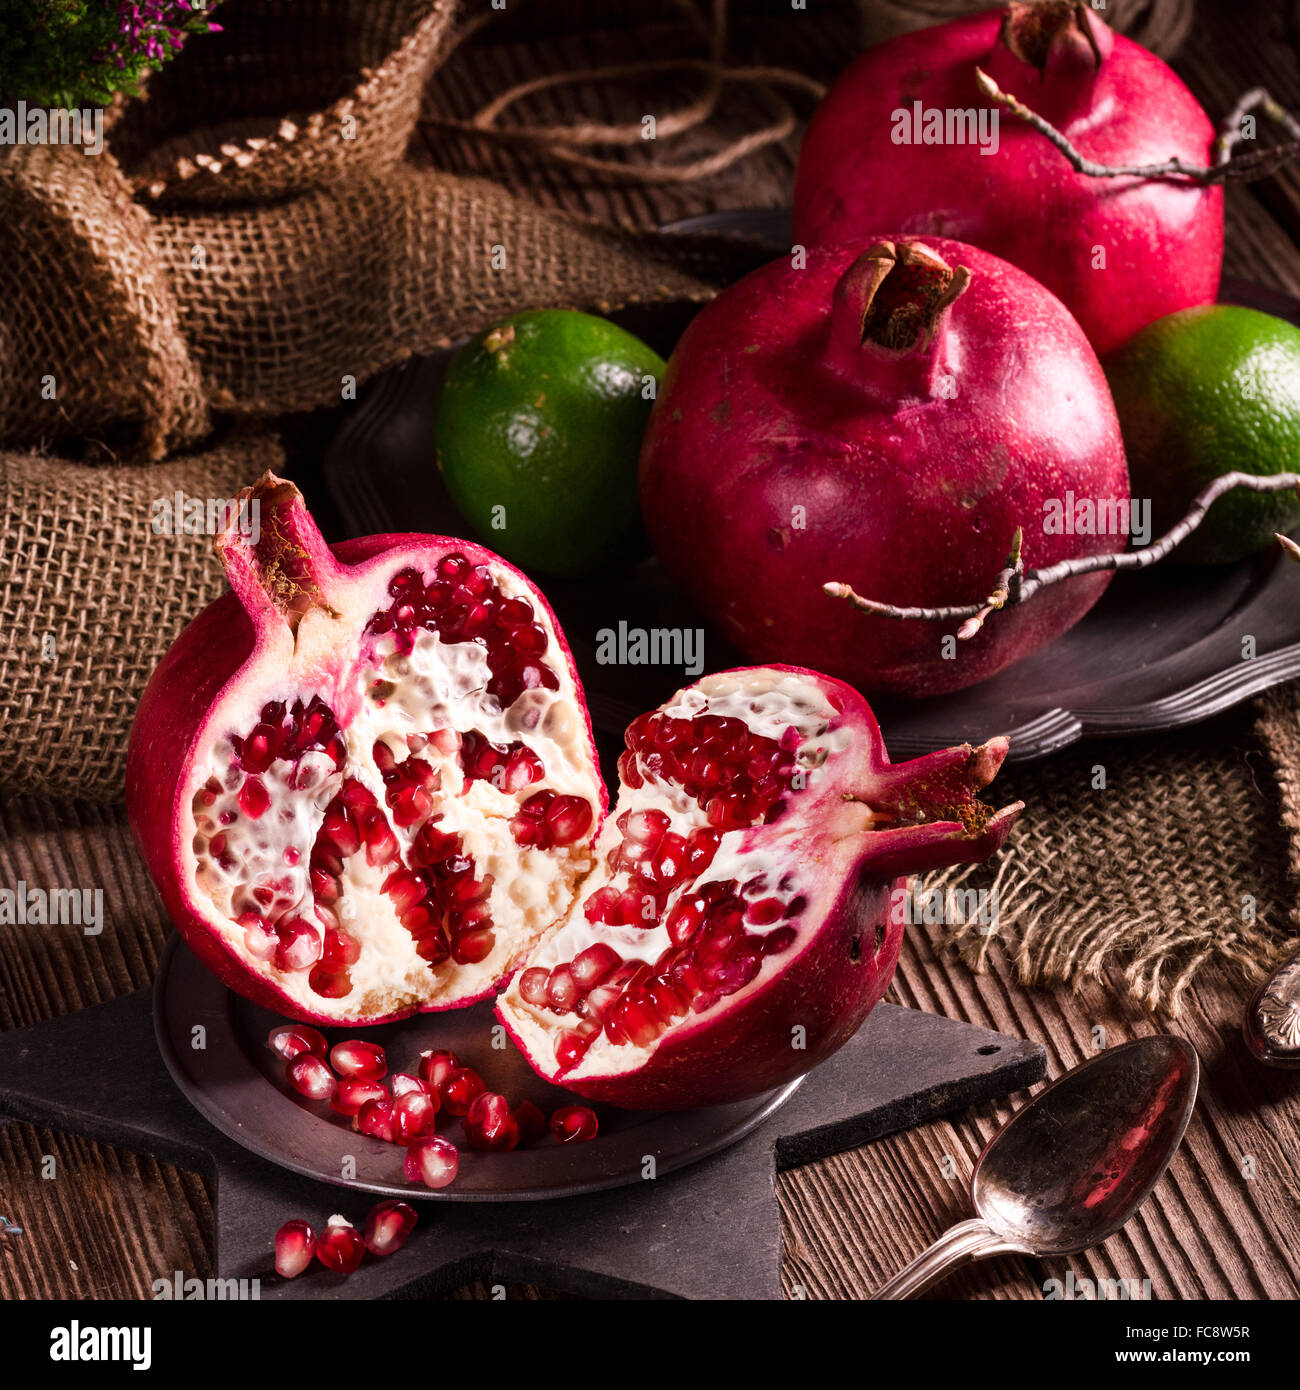 Pomegranate - Stock Image